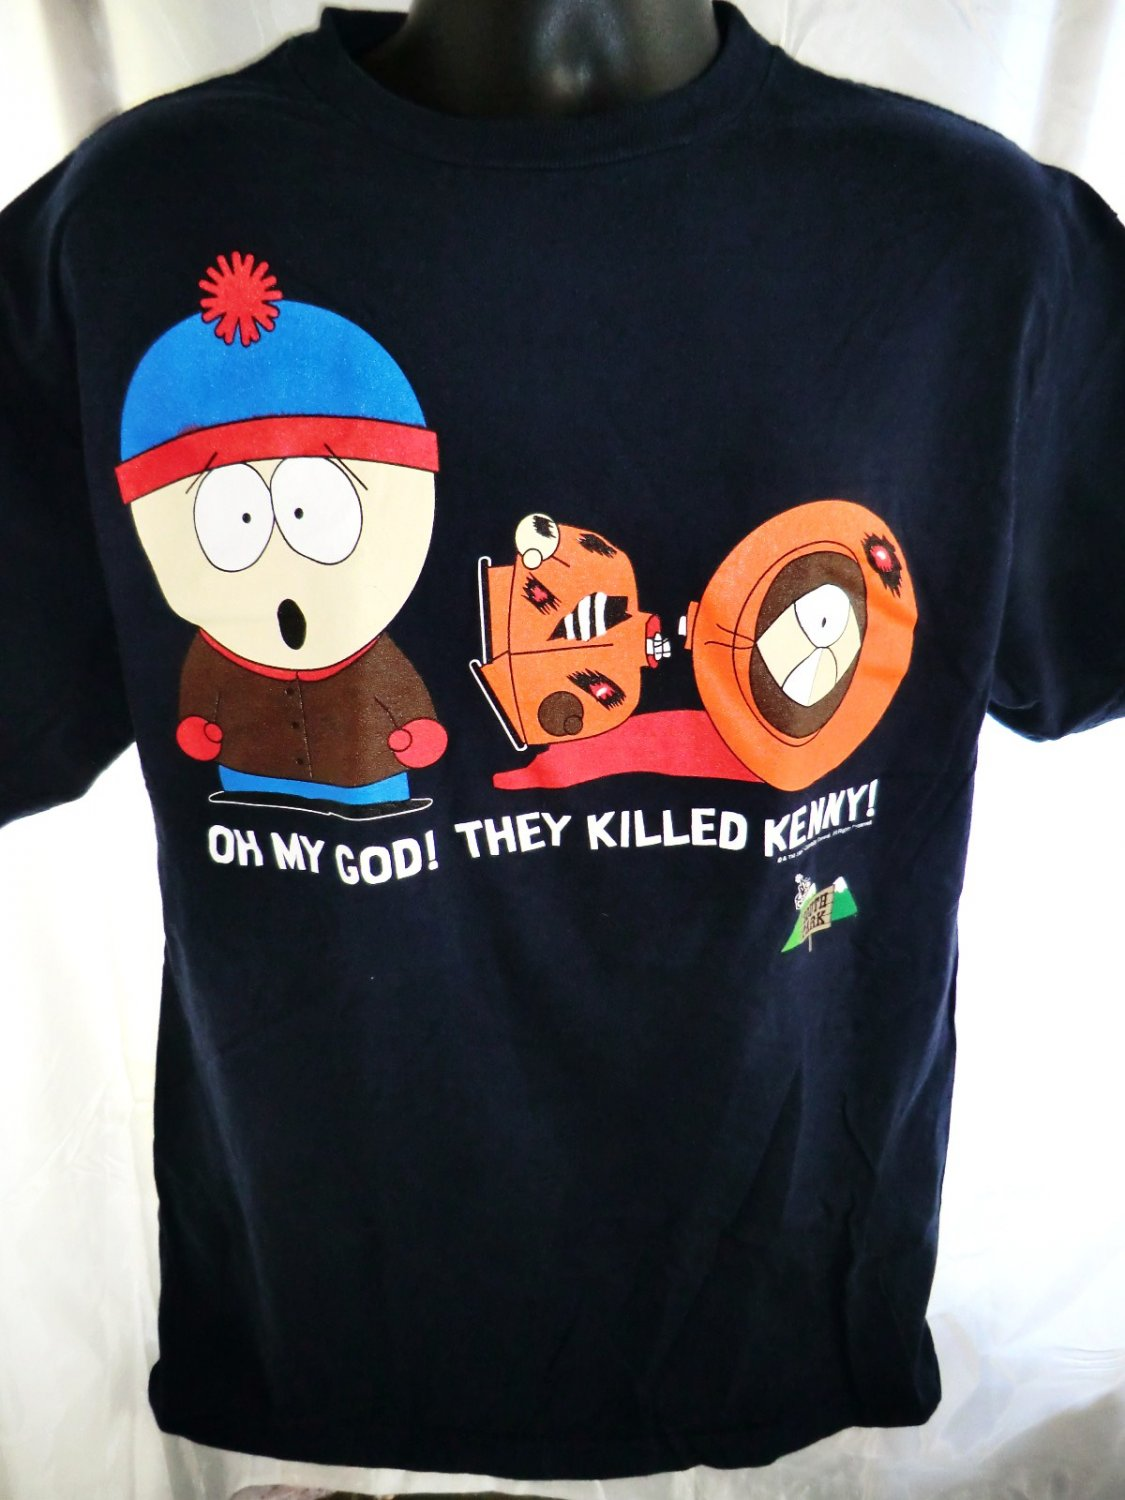 SOLD! Vintage 1997 SOUTH PARK T-Shirt Size Large They Killed Kenny